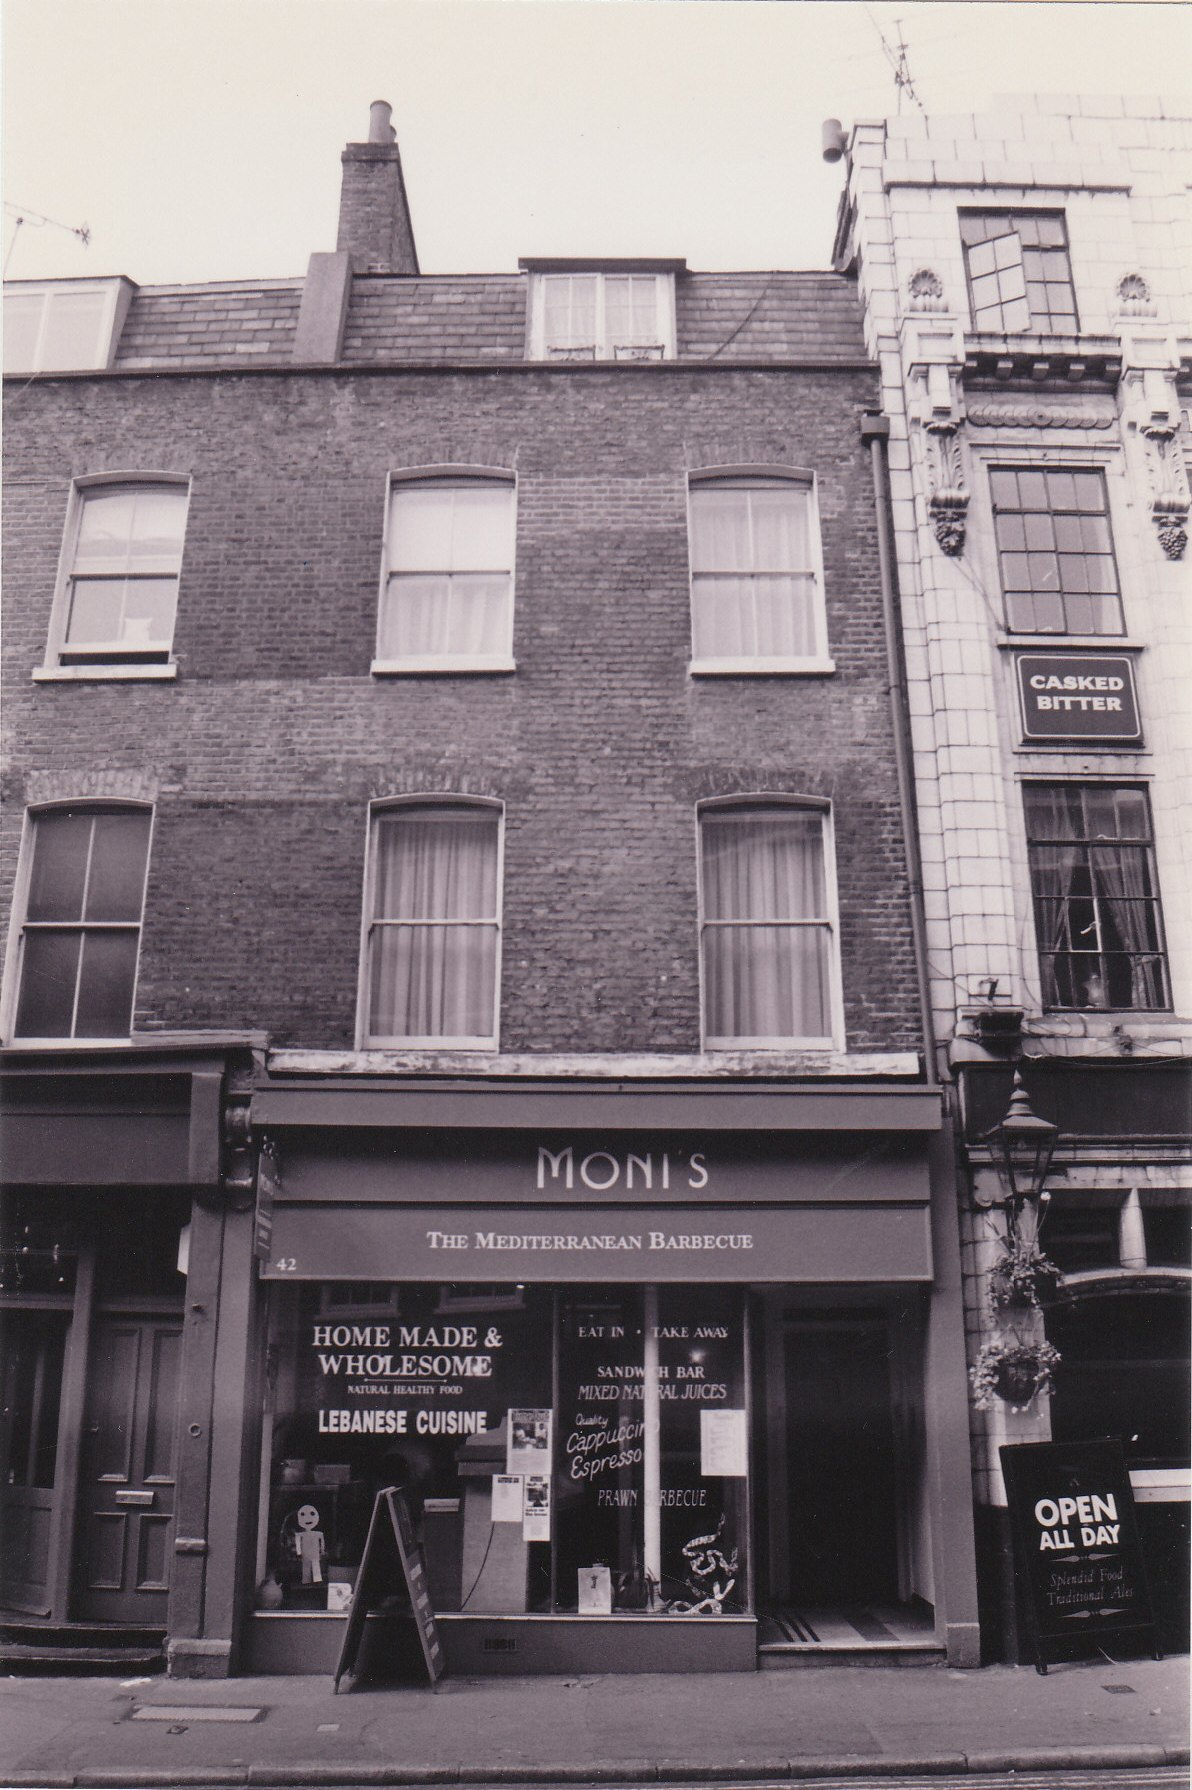 42 Monmouth Street before restoration.